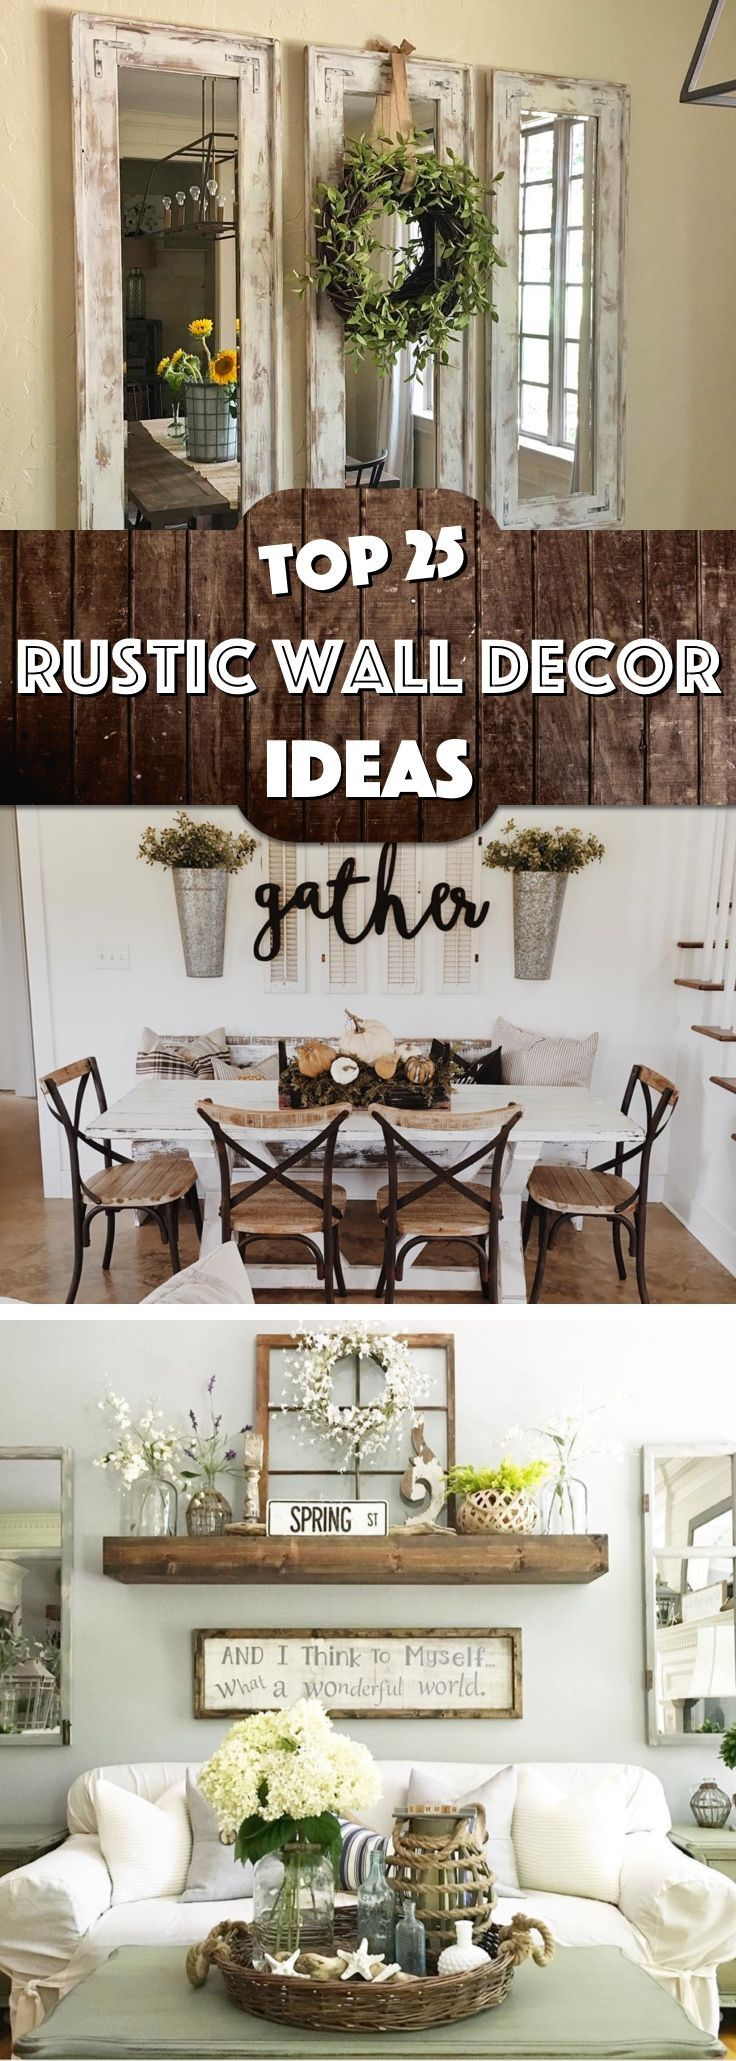 Best 25 country wall decor ideas on pinterest rustic gallery wall country decor and rustic - Country wall decor ideas ...